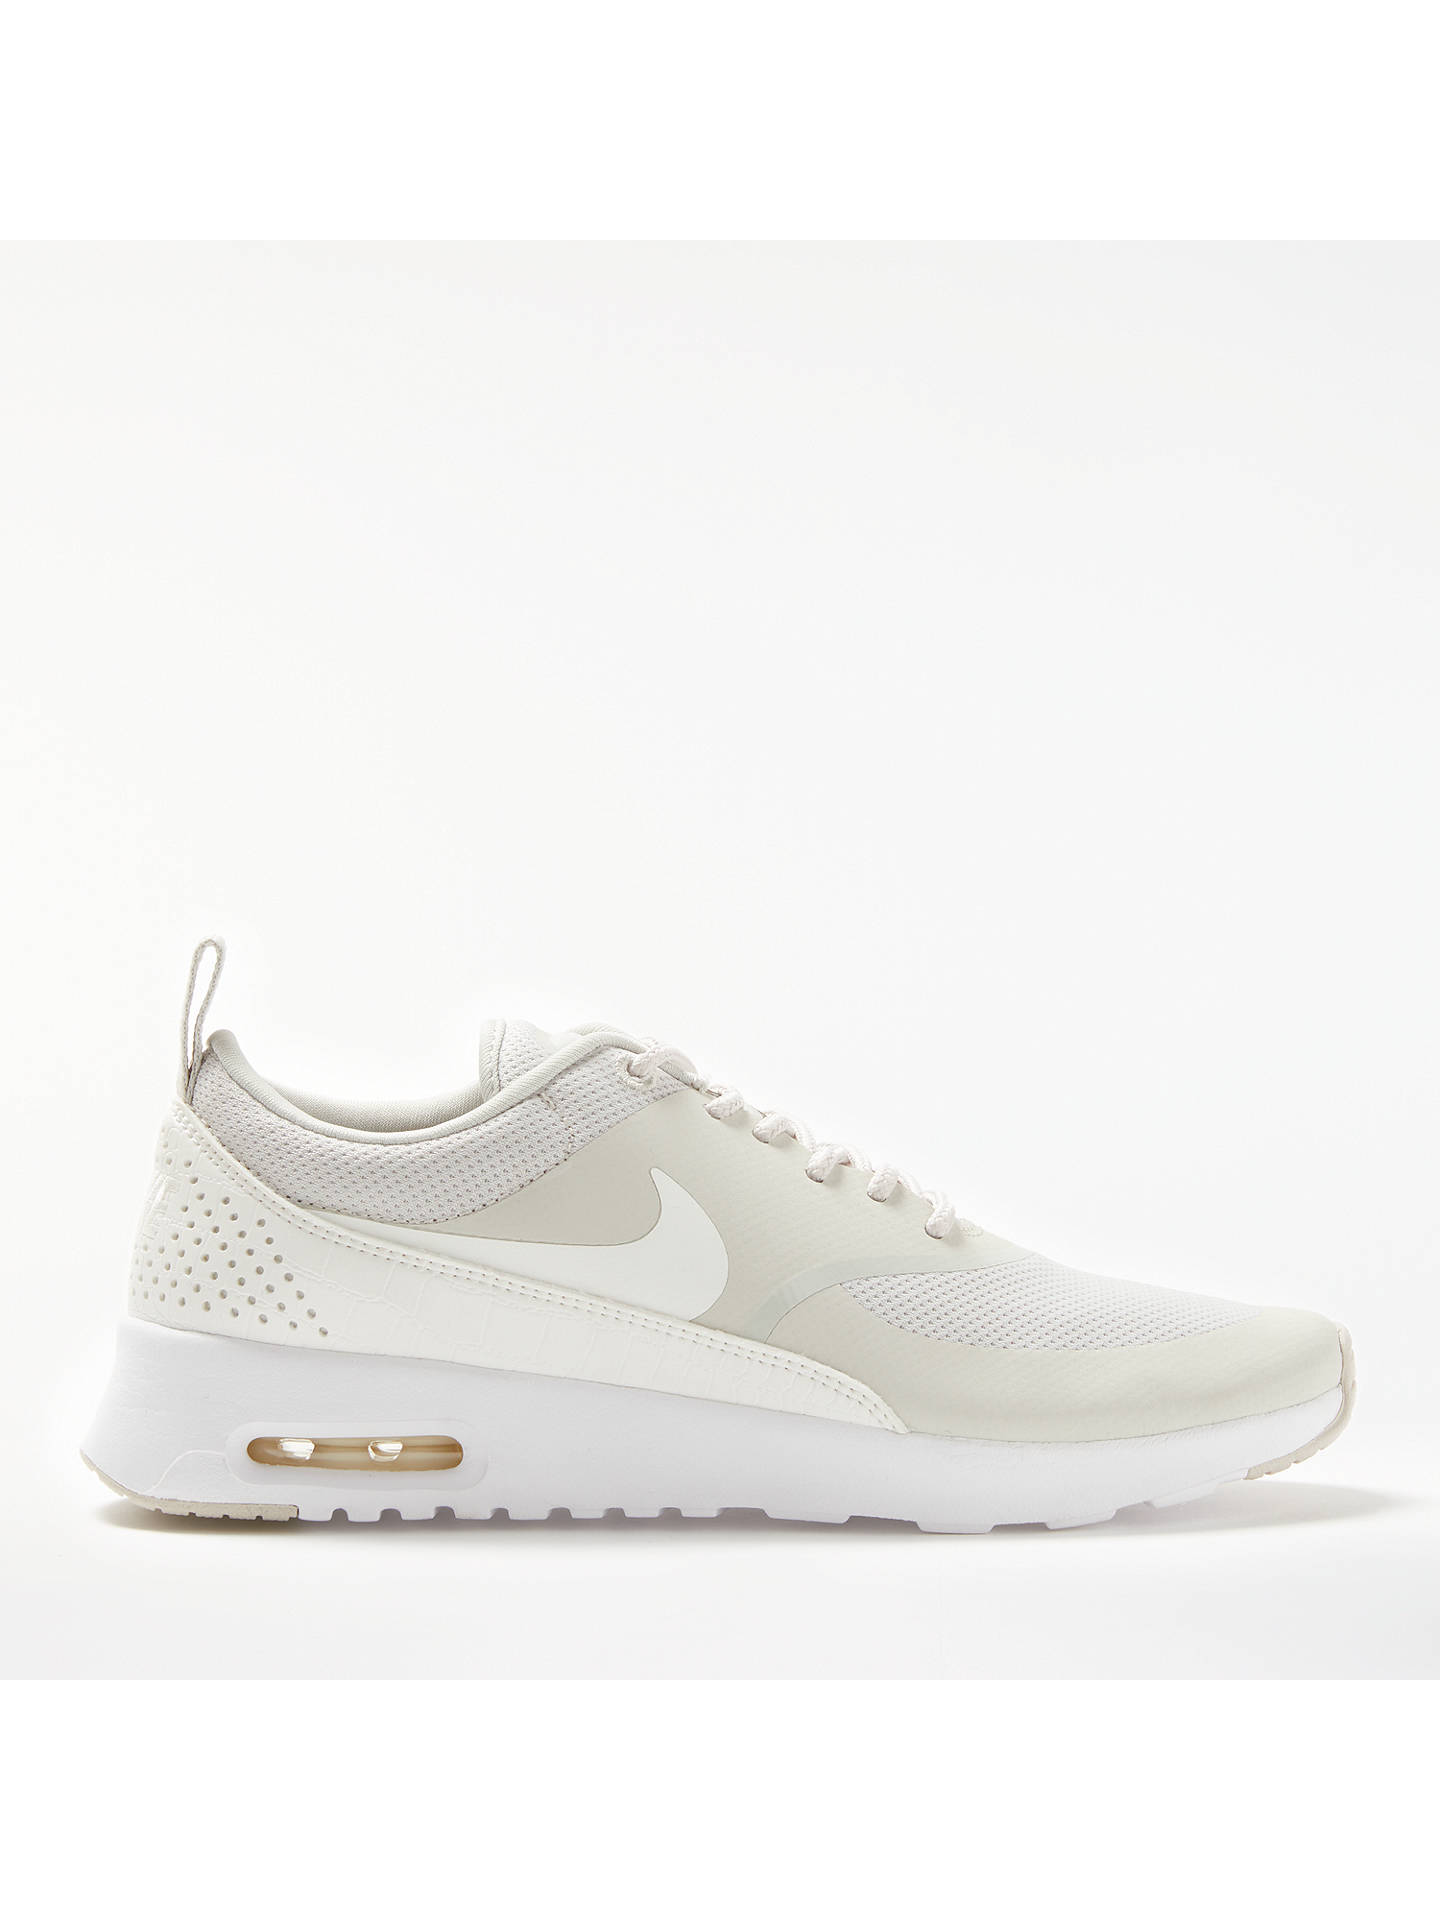 6059d0a08e Buy Nike Air Max Thea Women's Trainers, Bone, 4 Online at johnlewis. ...